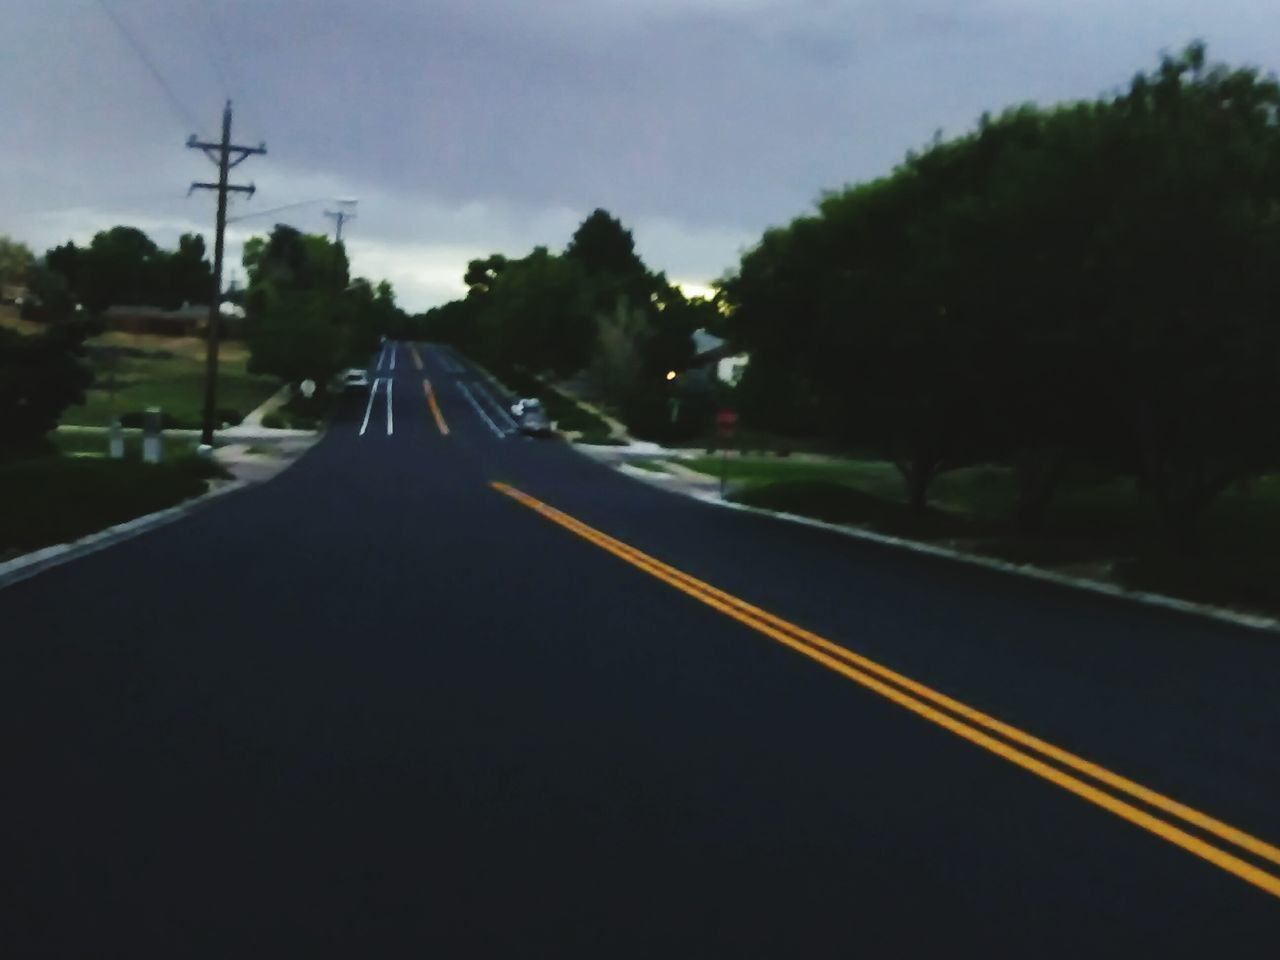 transportation, the way forward, diminishing perspective, road, no people, outdoors, day, sky, tree, nature